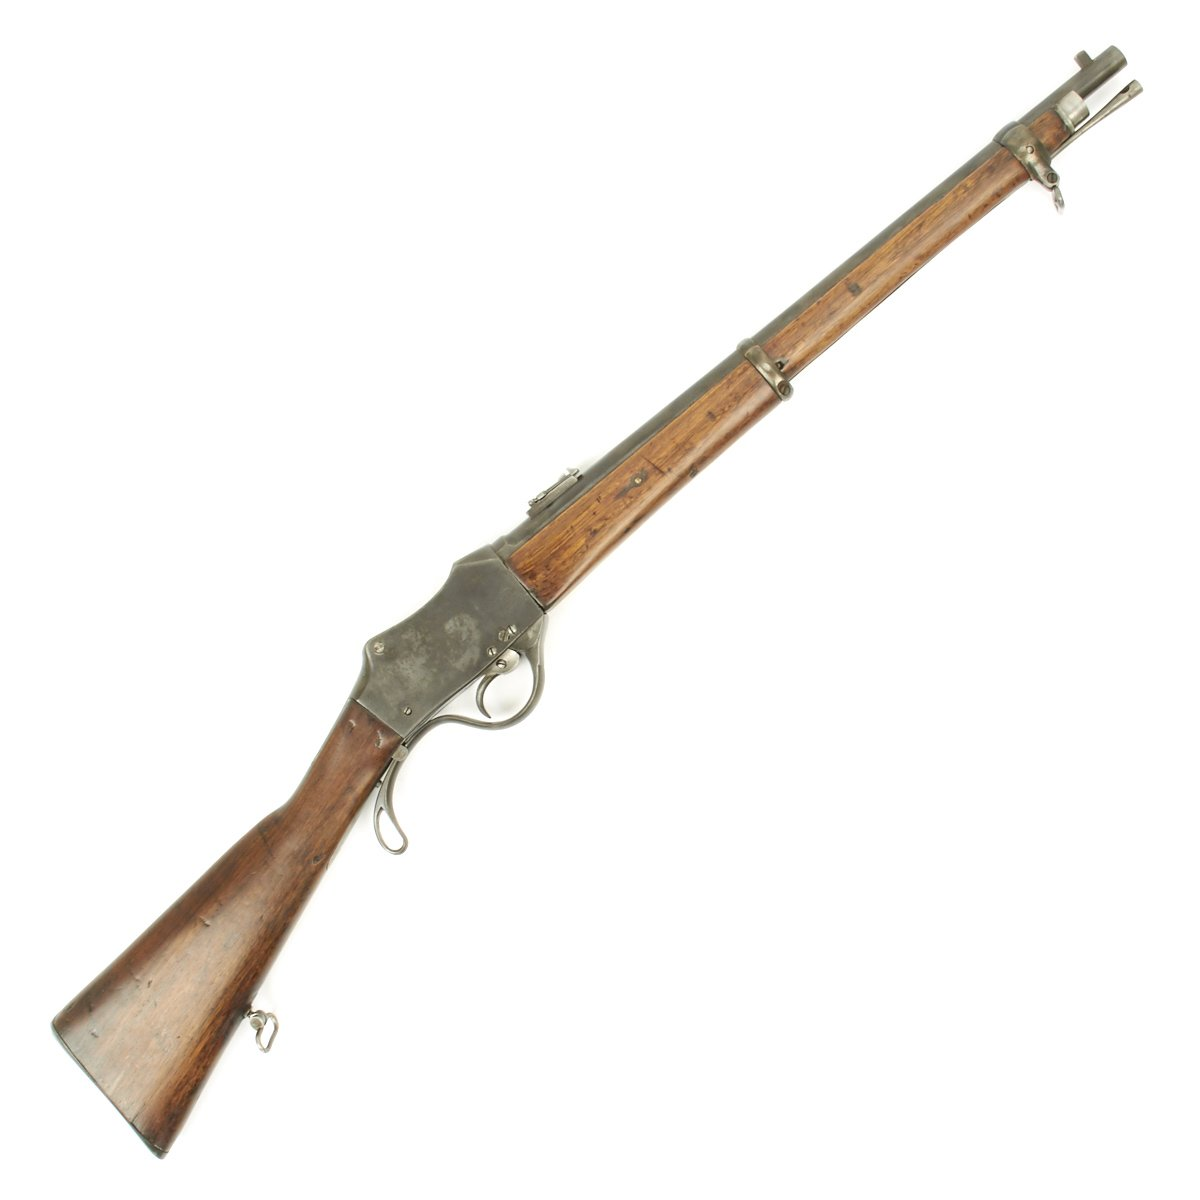 Martini henry rifle for sale